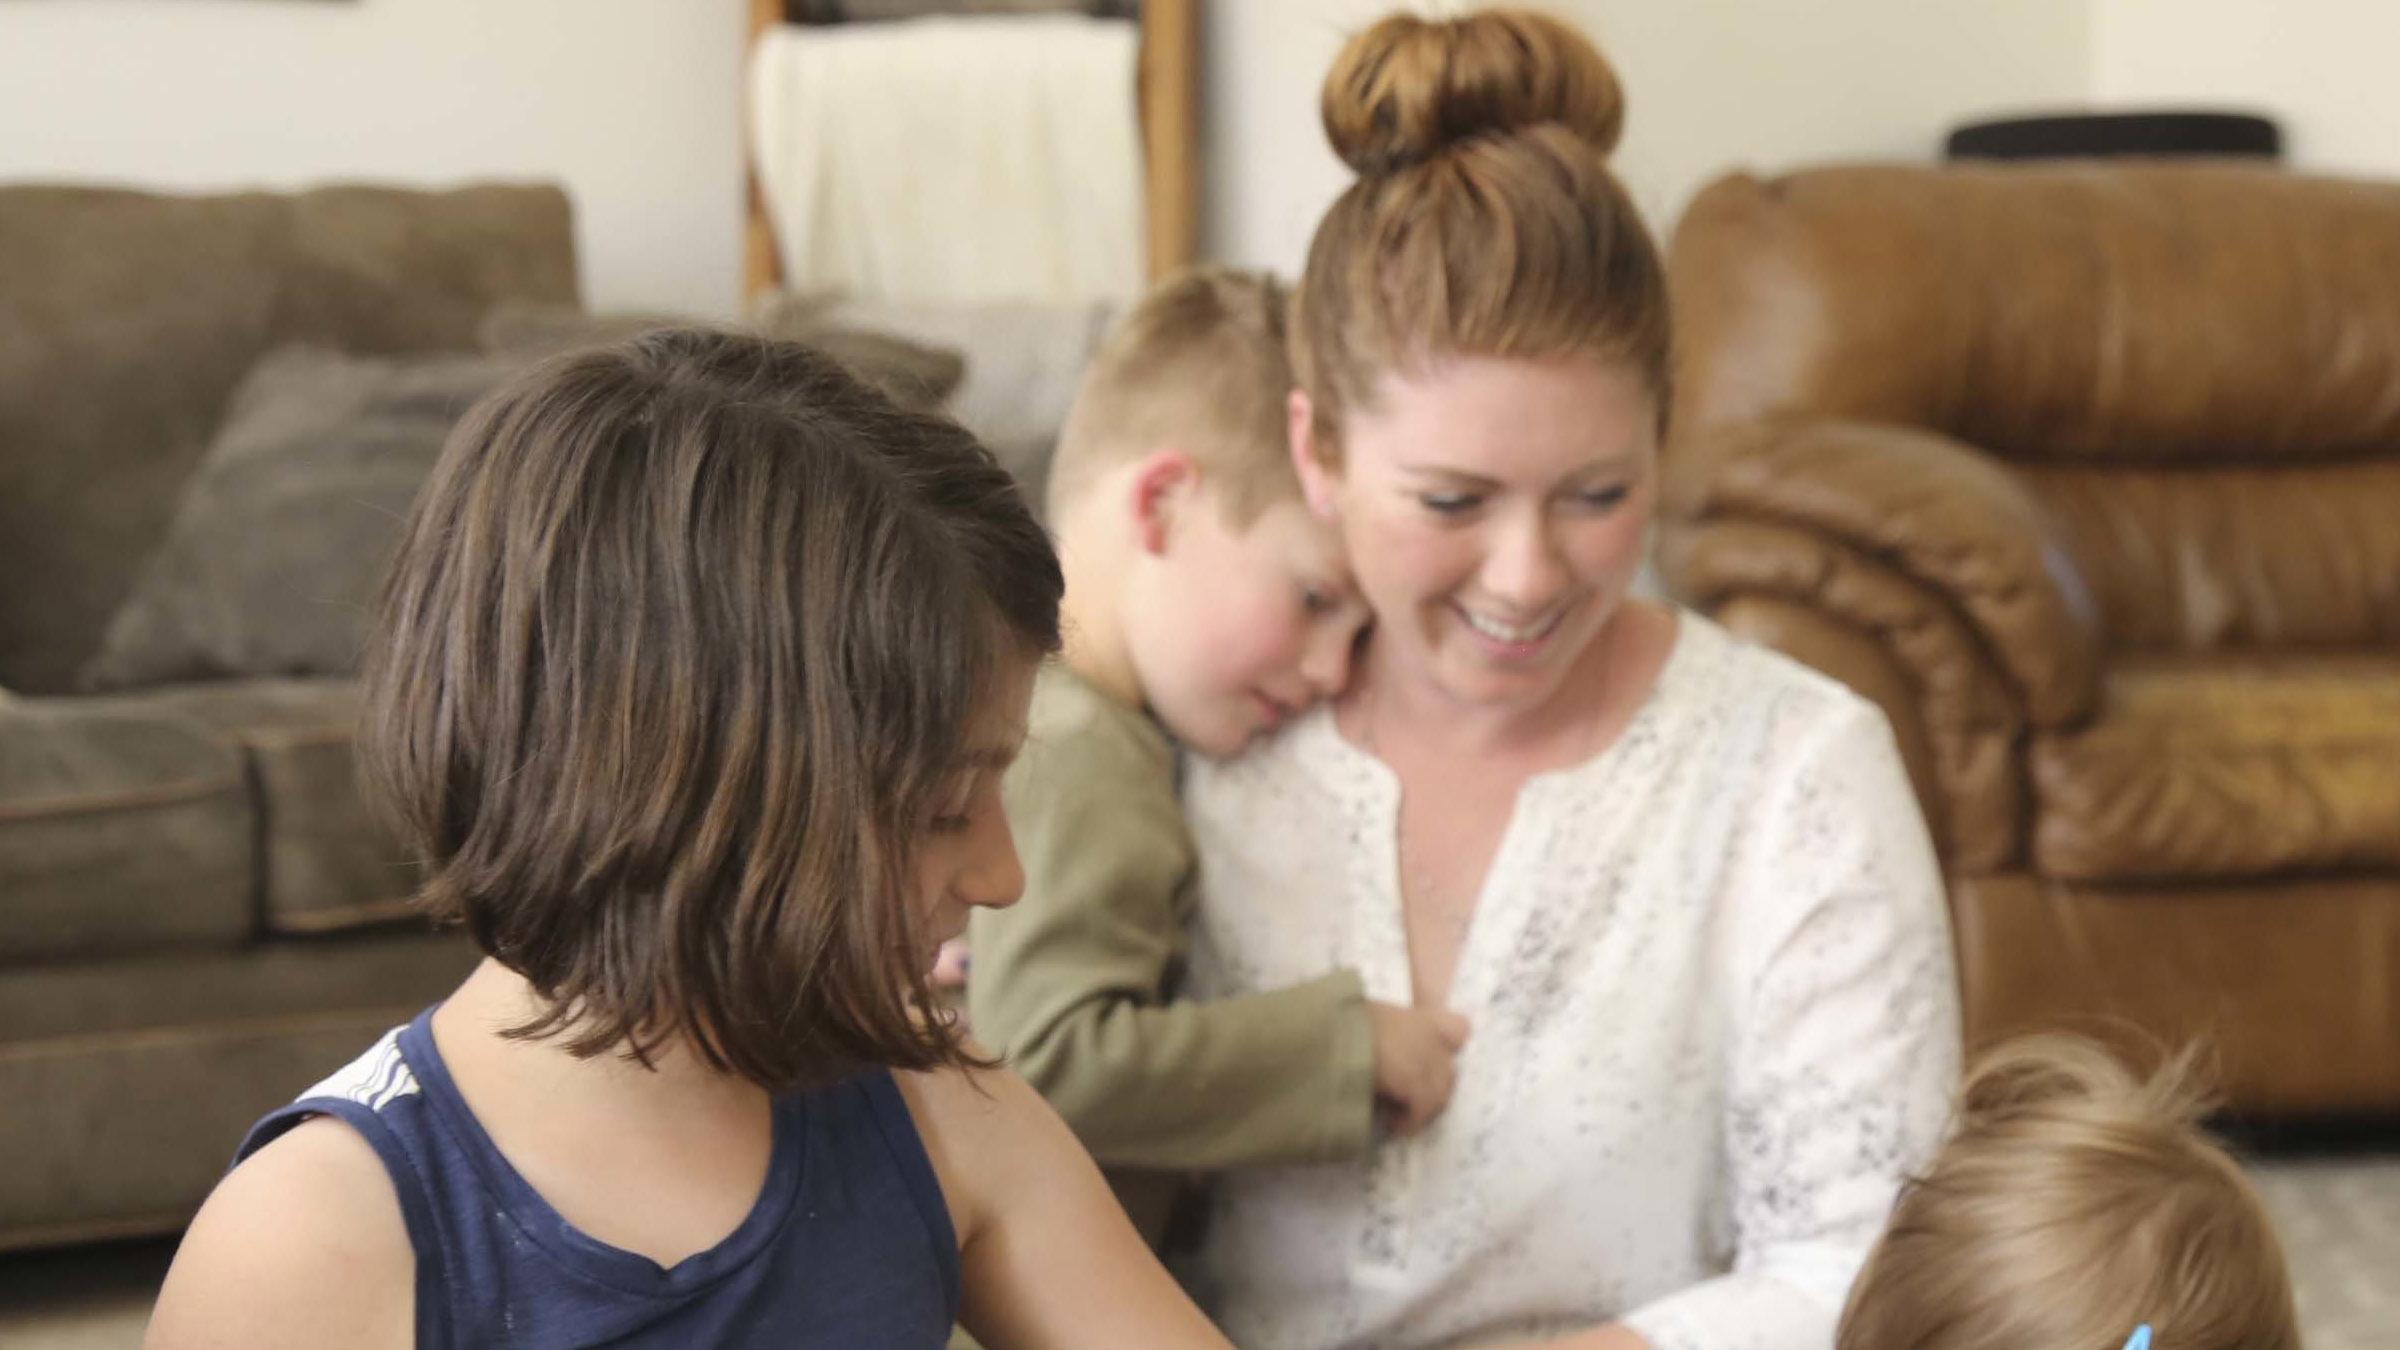 Spouse and family of service member enjoy time in their new home